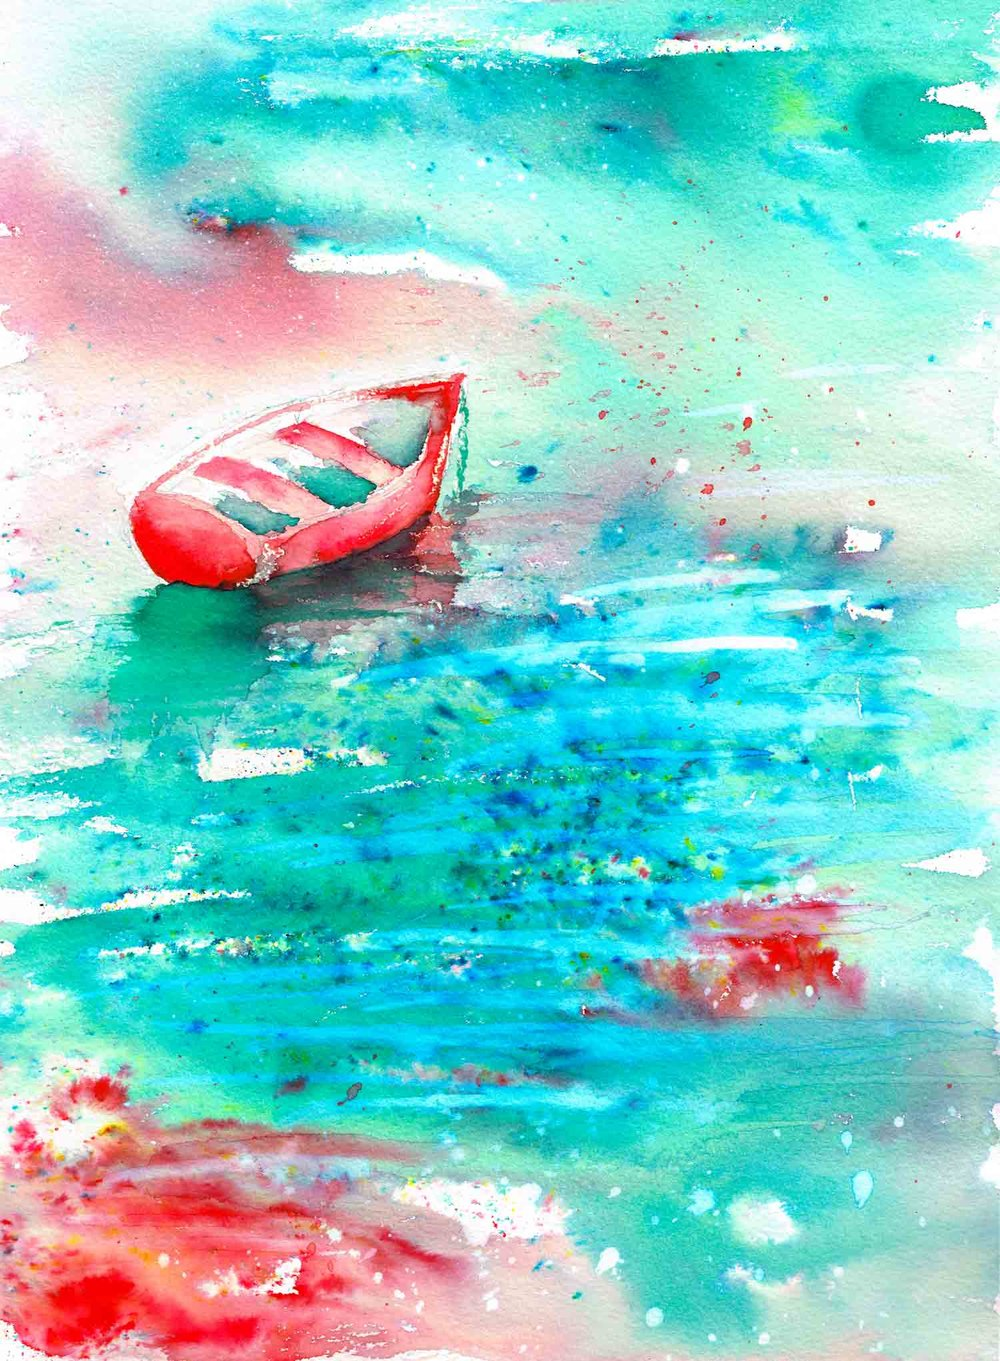 Messing-about-in-boats-no-1-Little-Red-Boat.jpg